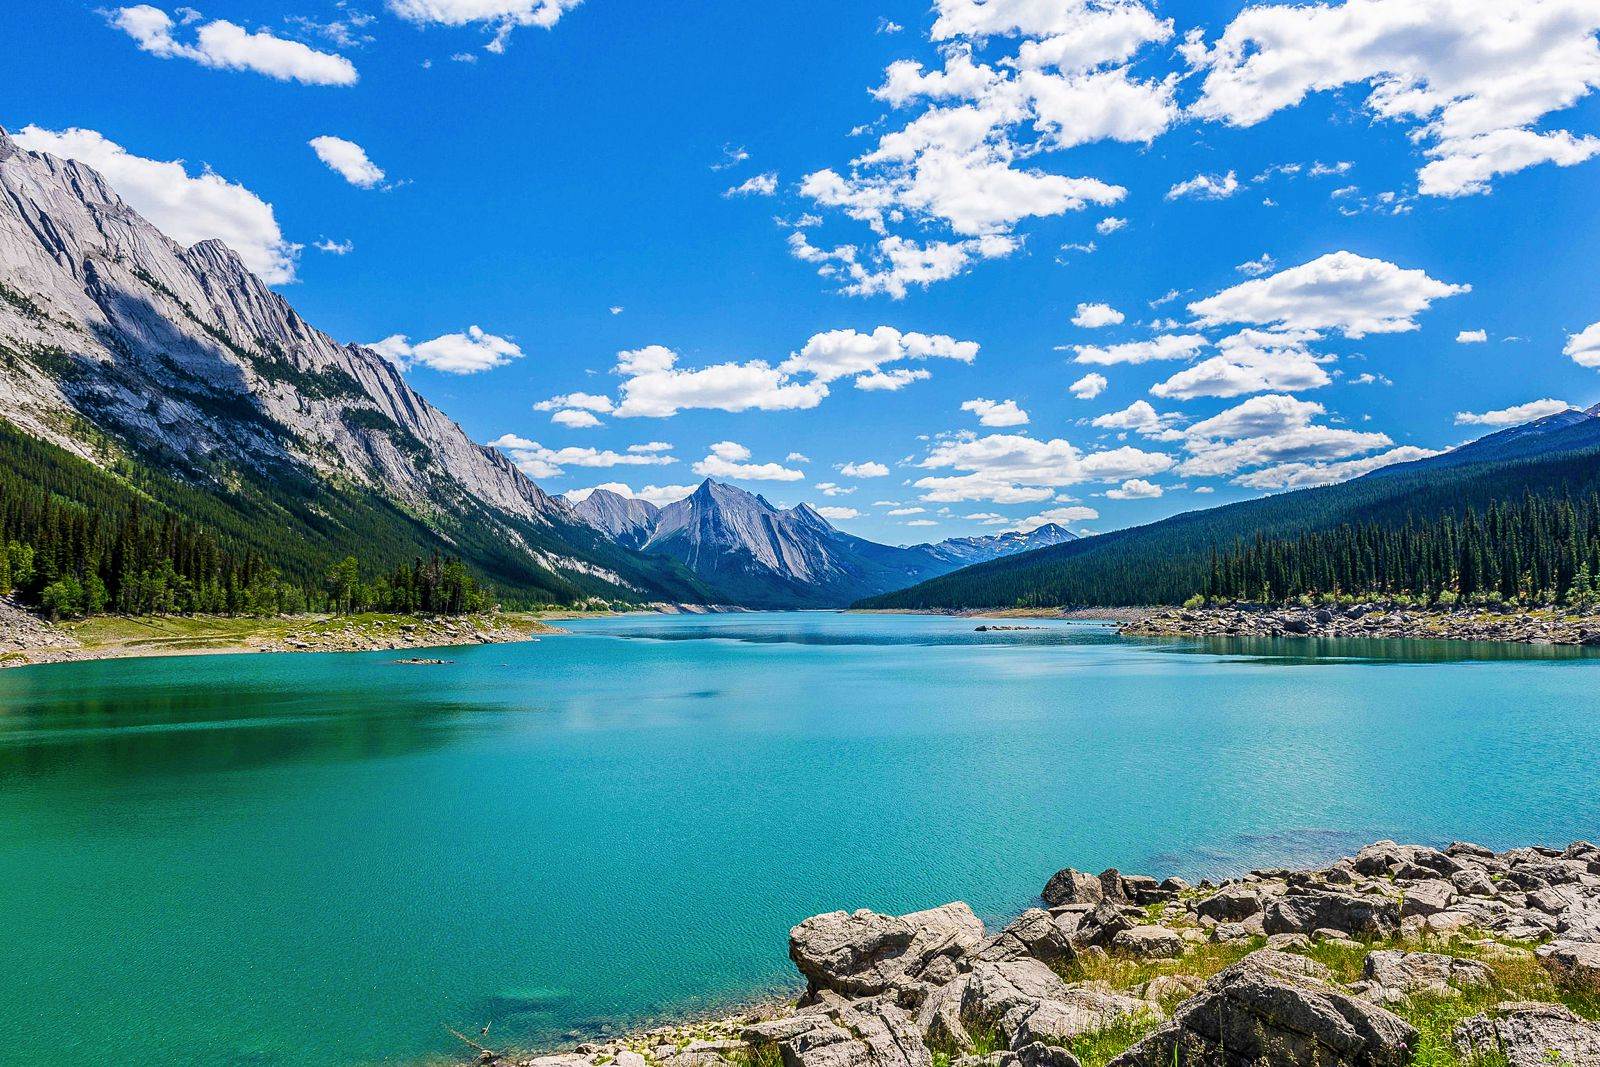 15 Beautiful Places You Have to Visit In Alberta, Canada